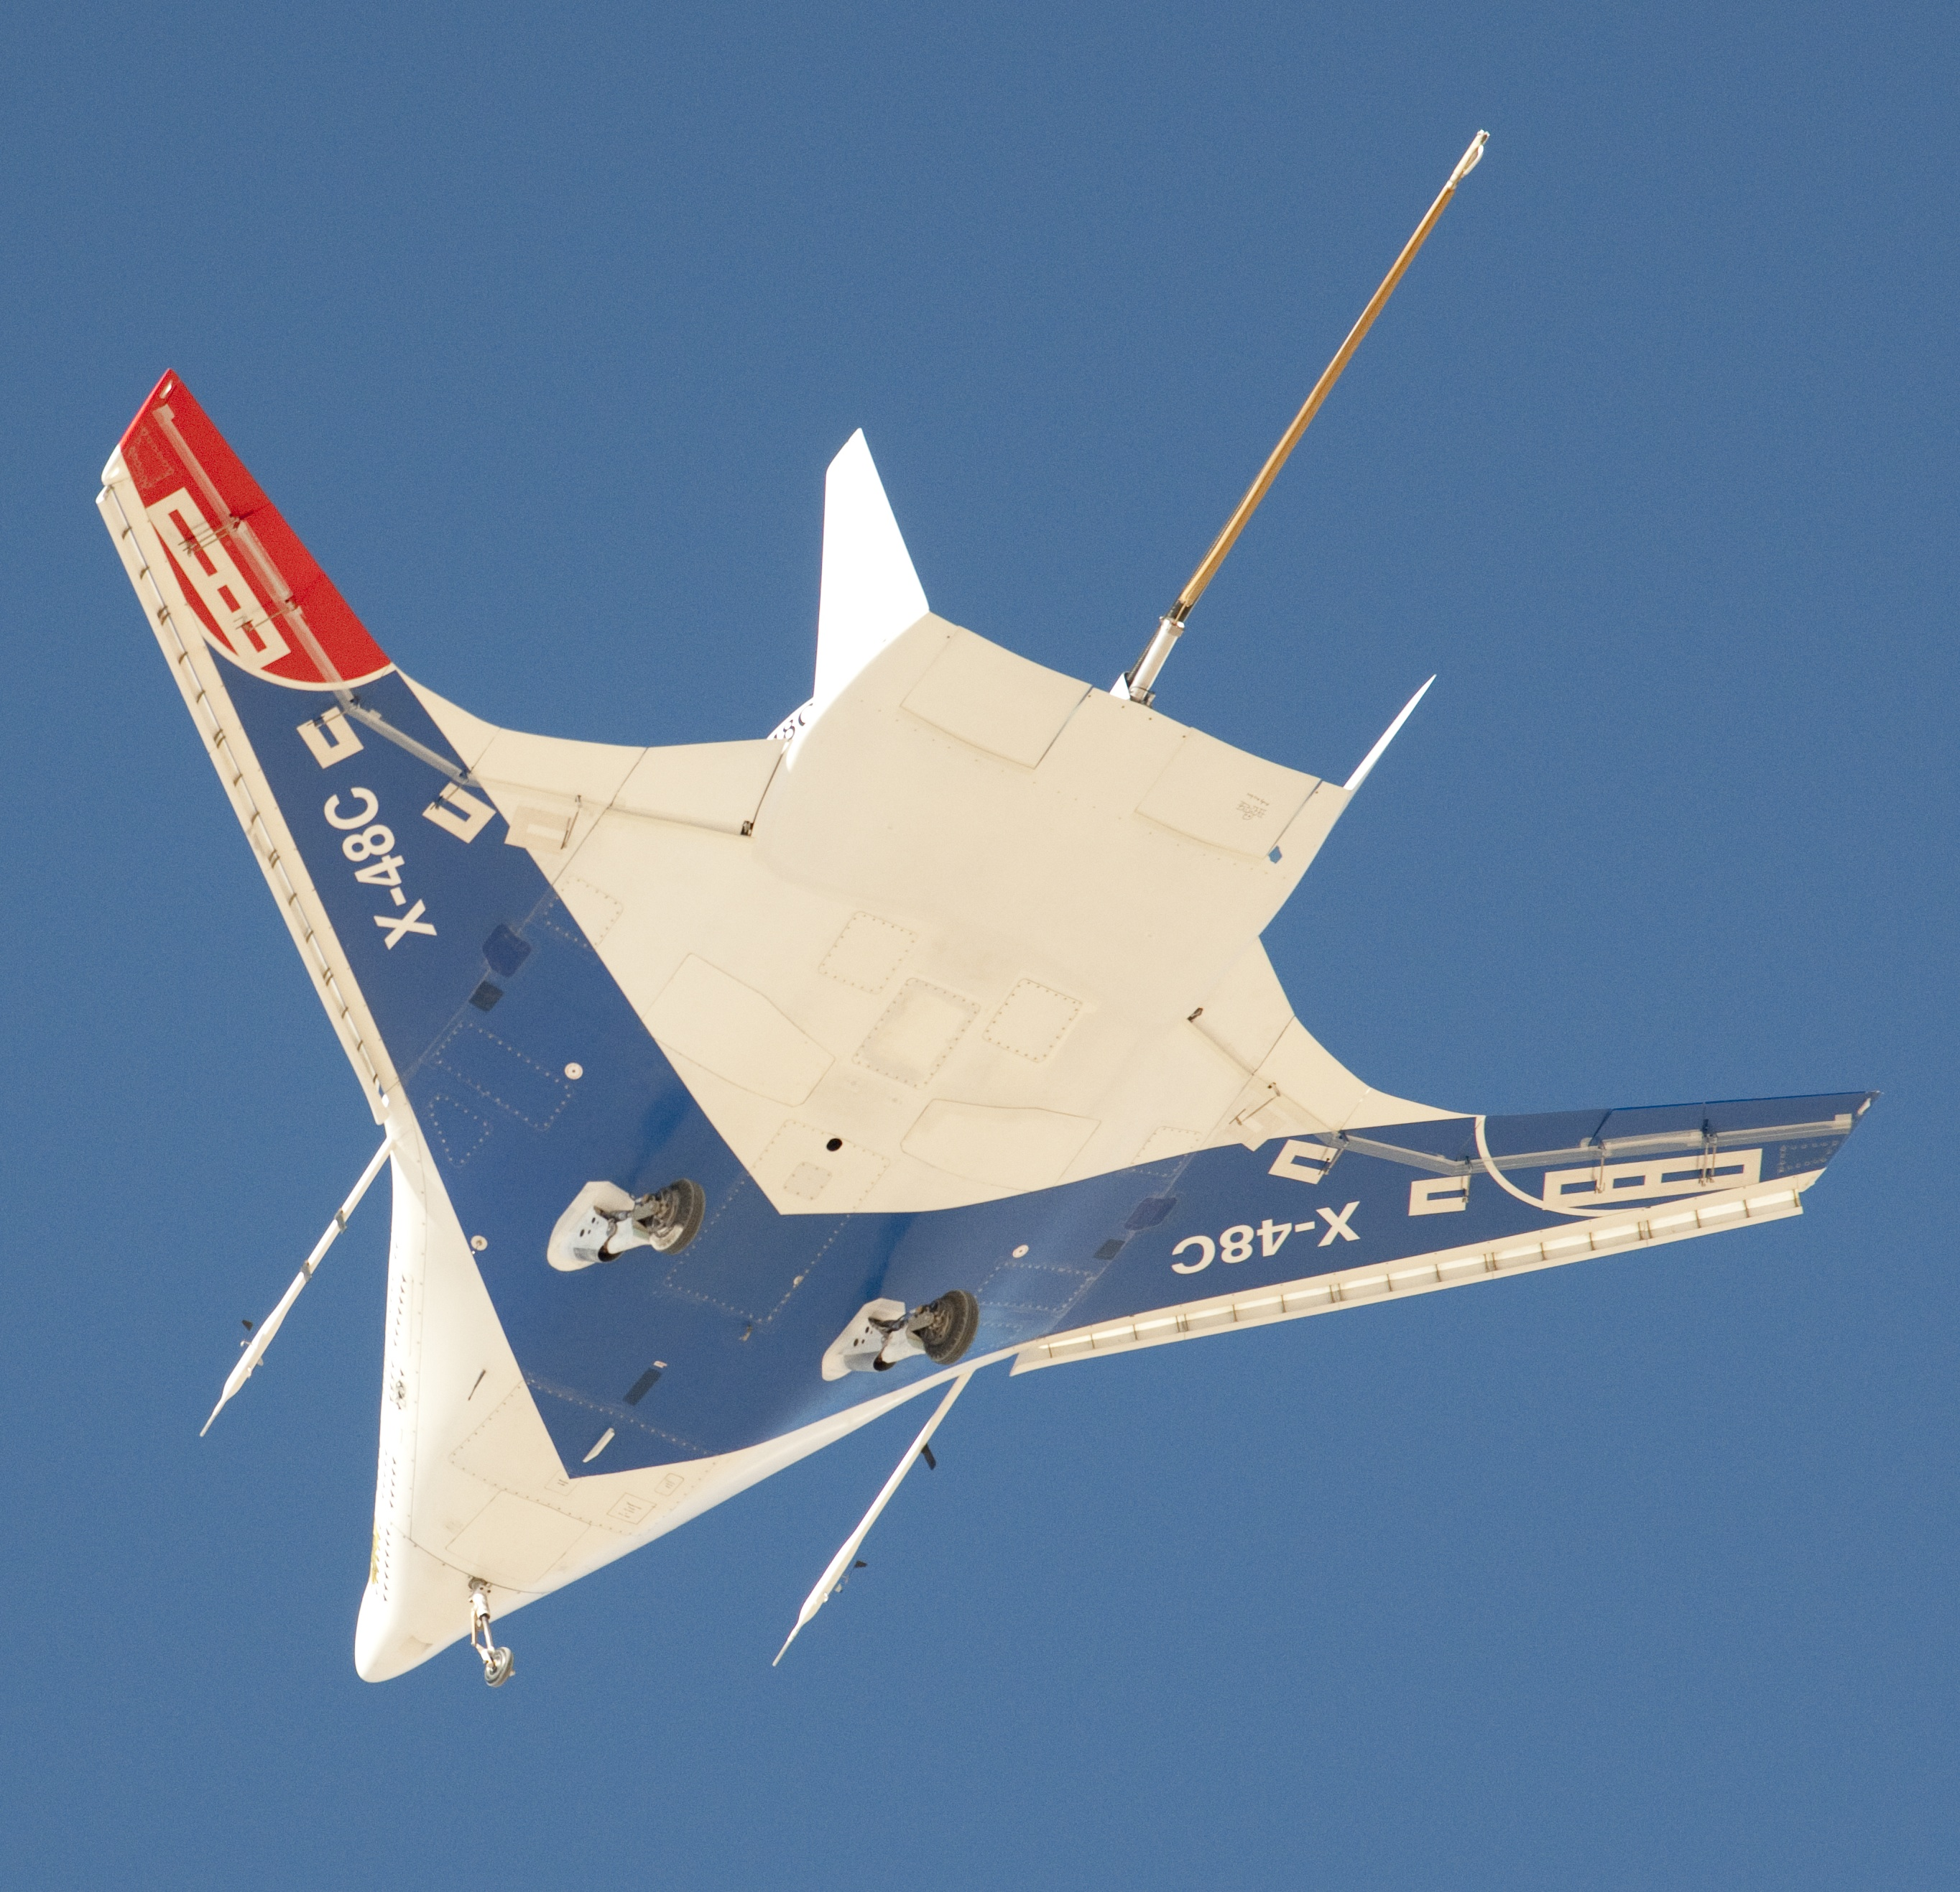 nasa x 48 drone aircraft - photo #24